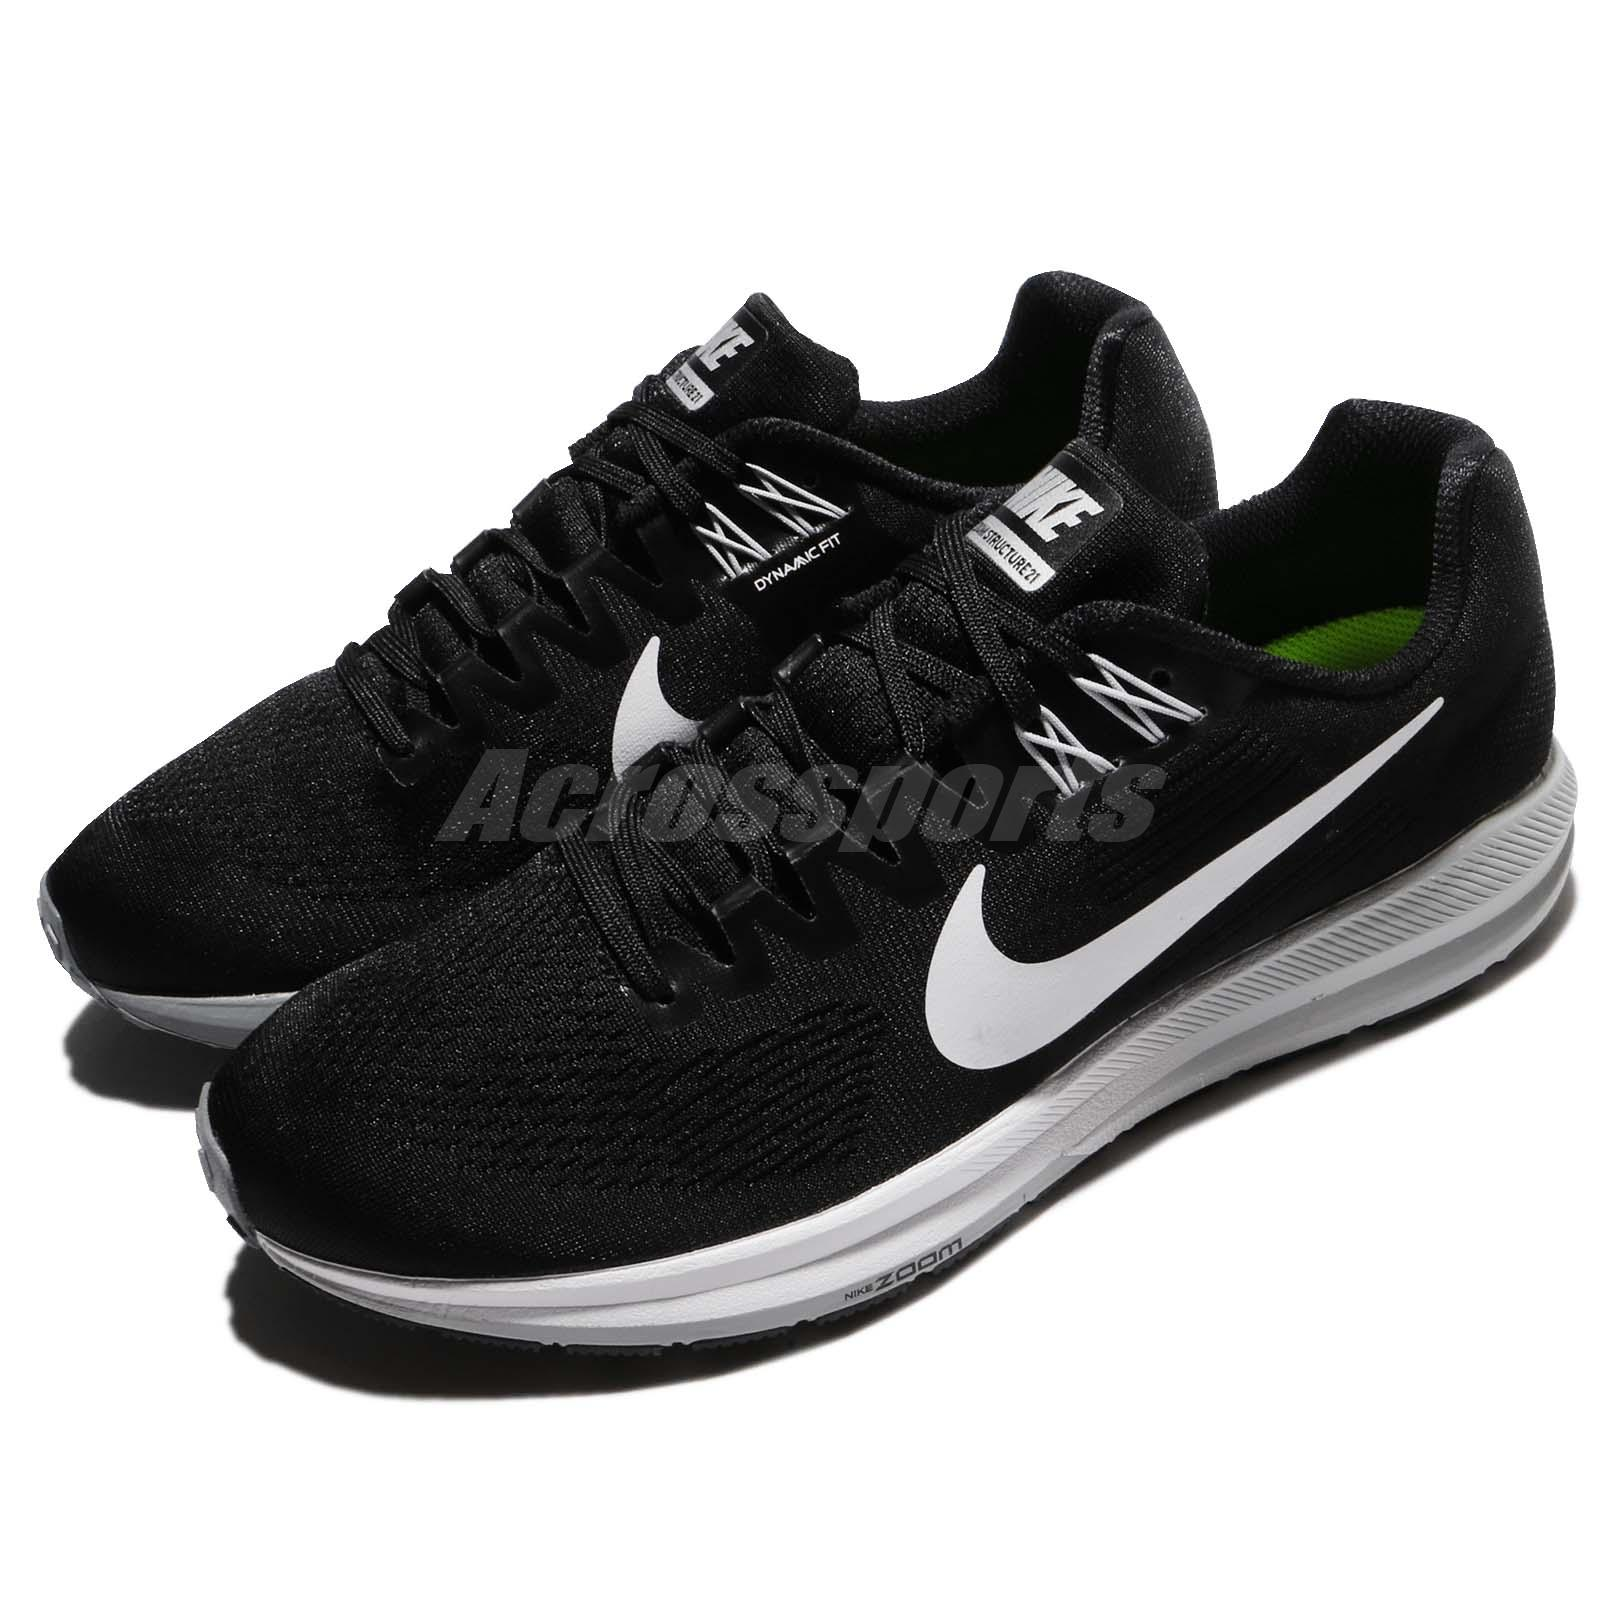 buy online 3a891 ef407 Details about Nike Air Zoom Structure 21 Black White Men Running Shoes  Sneakers 904695-001